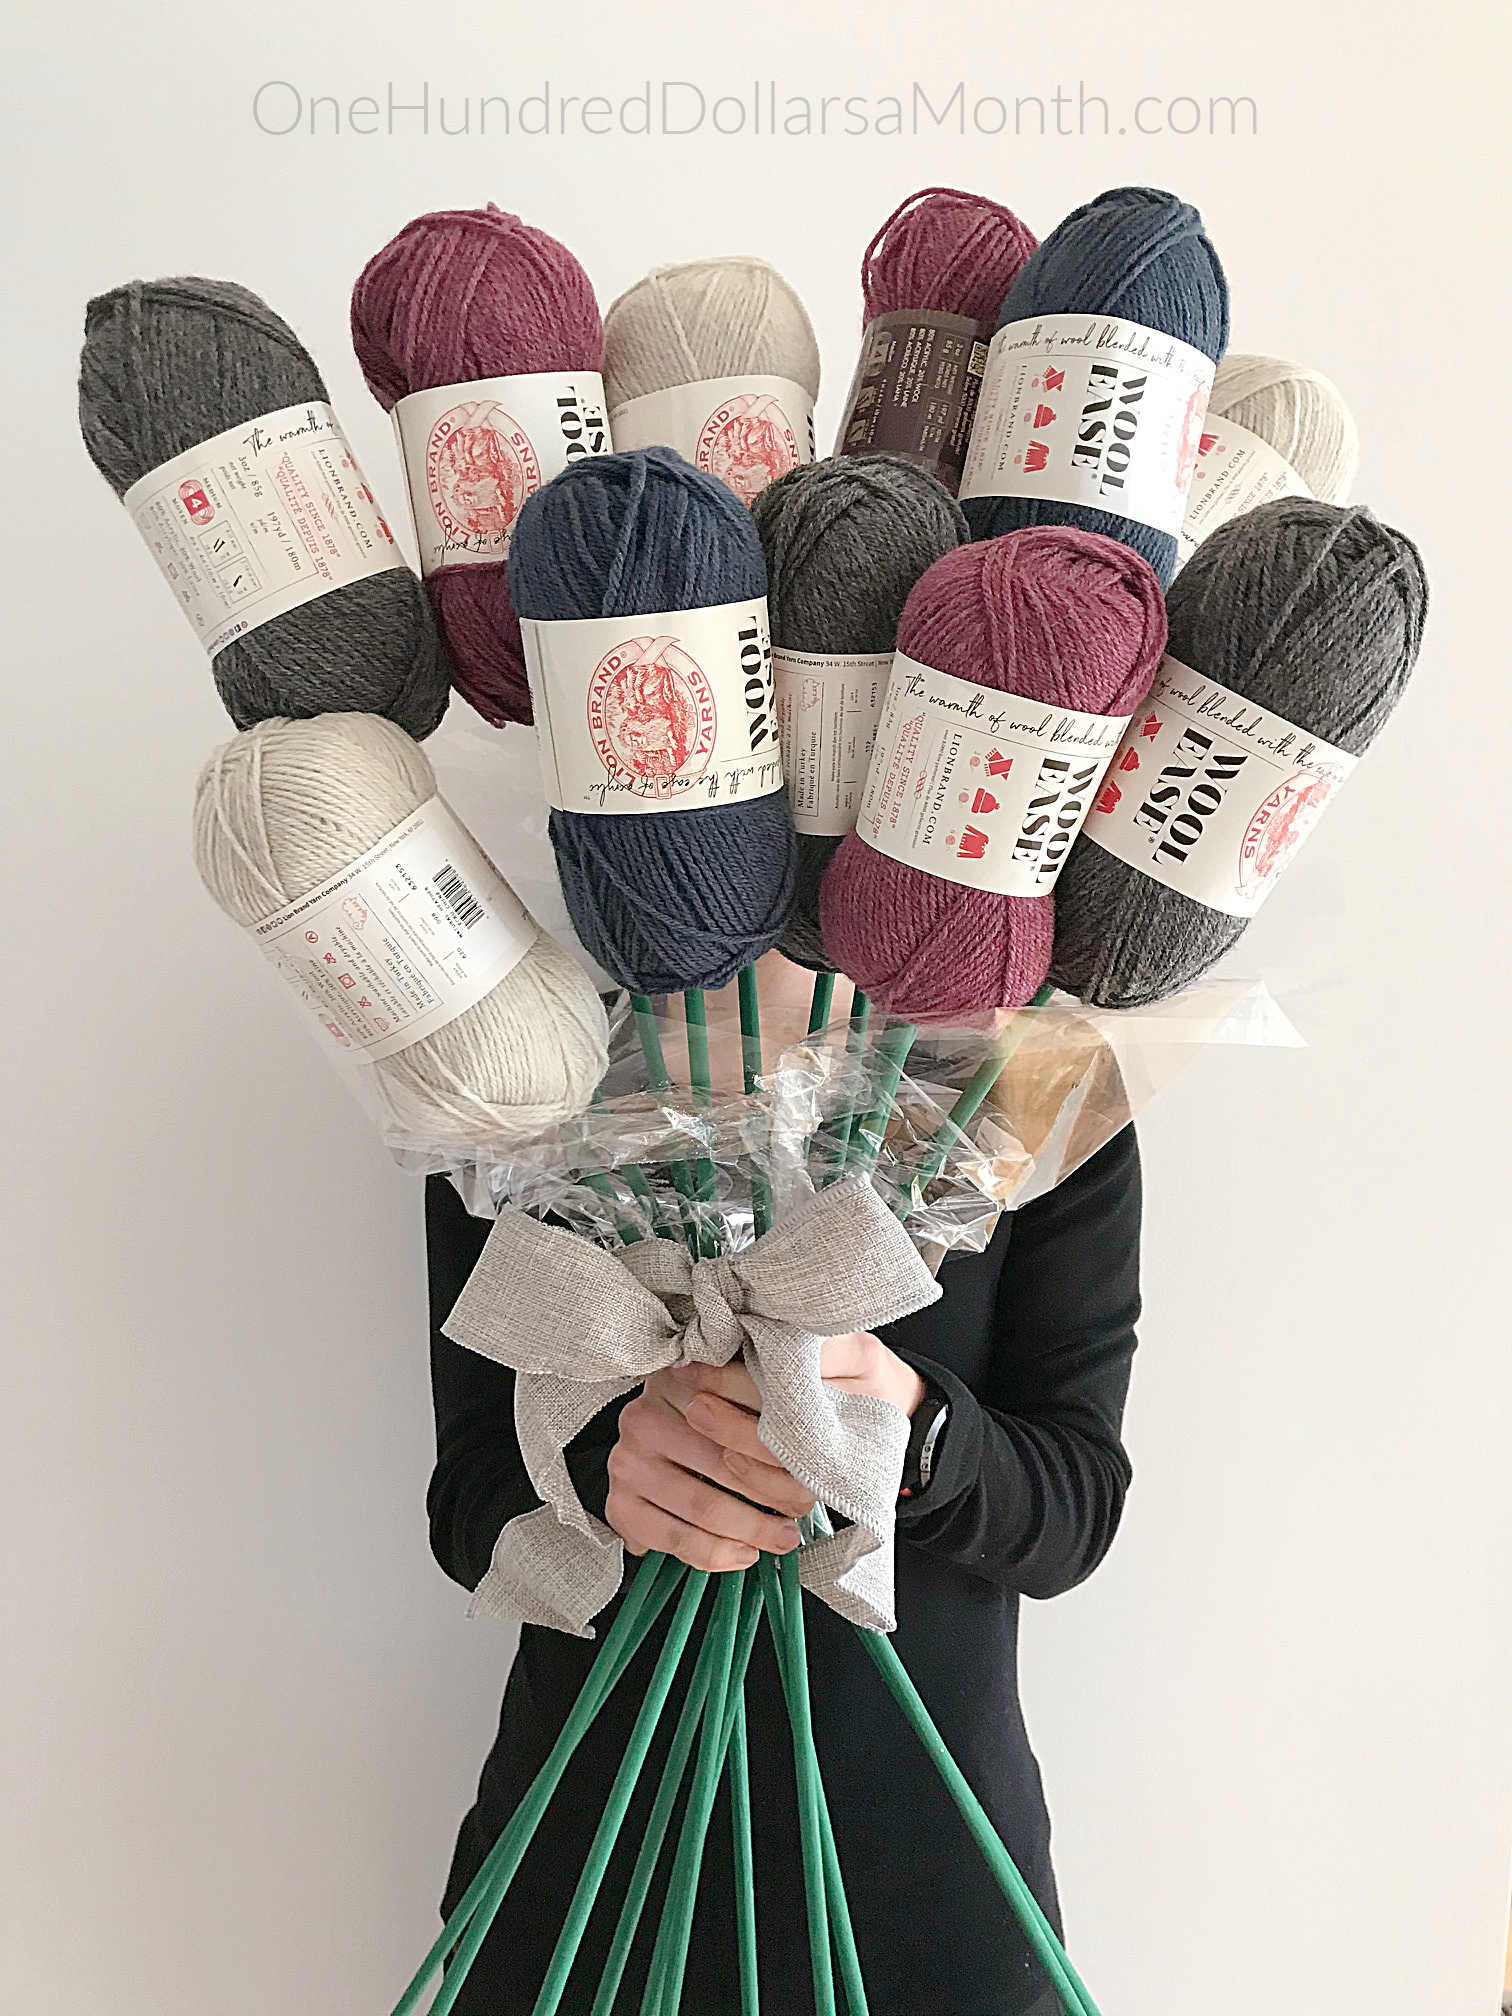 How to Make a Yarn Bouquet